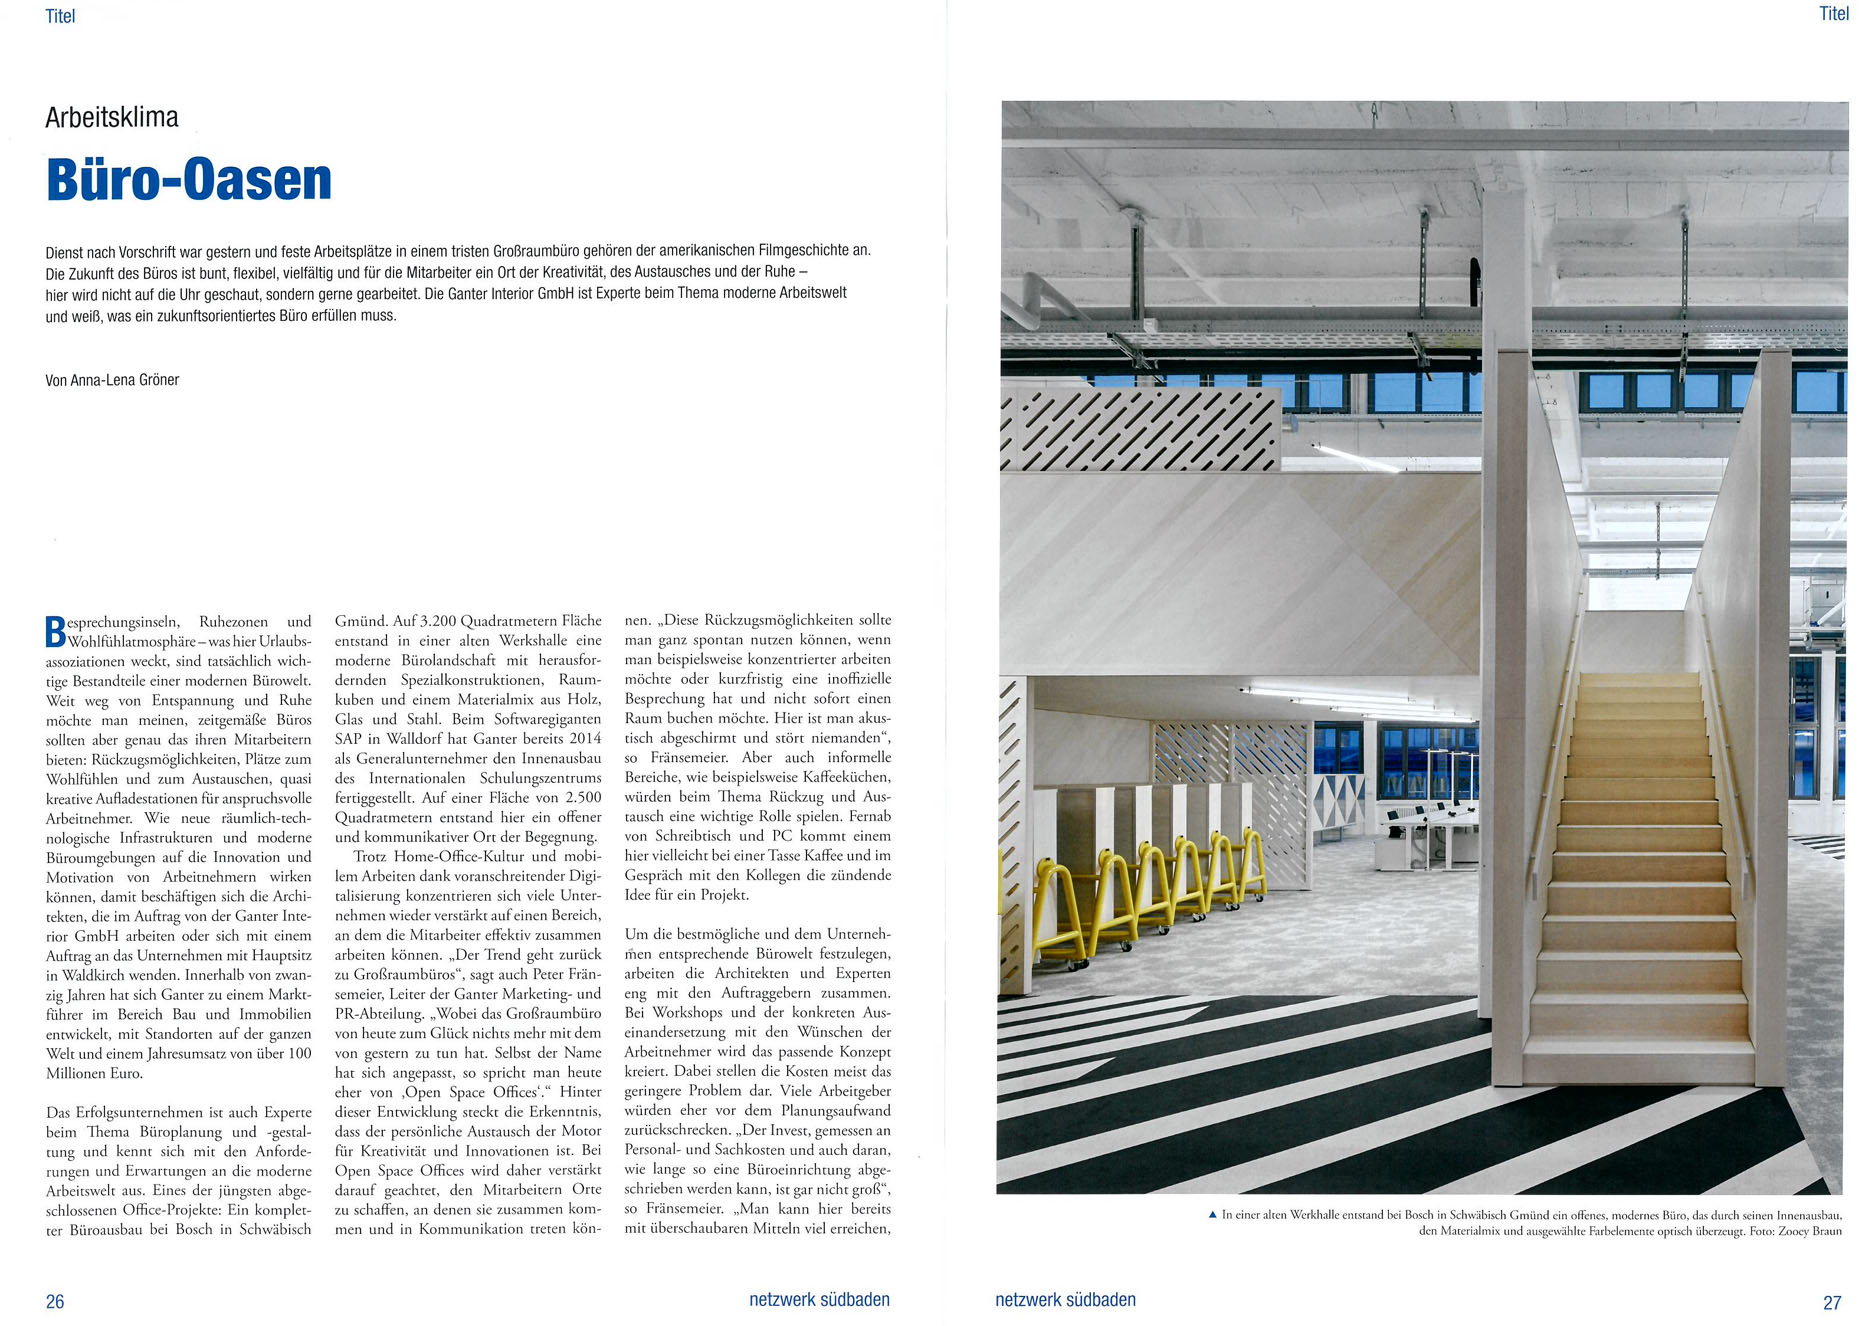 A discussion with Netzwerk Südbaden about the future of workspaces ...